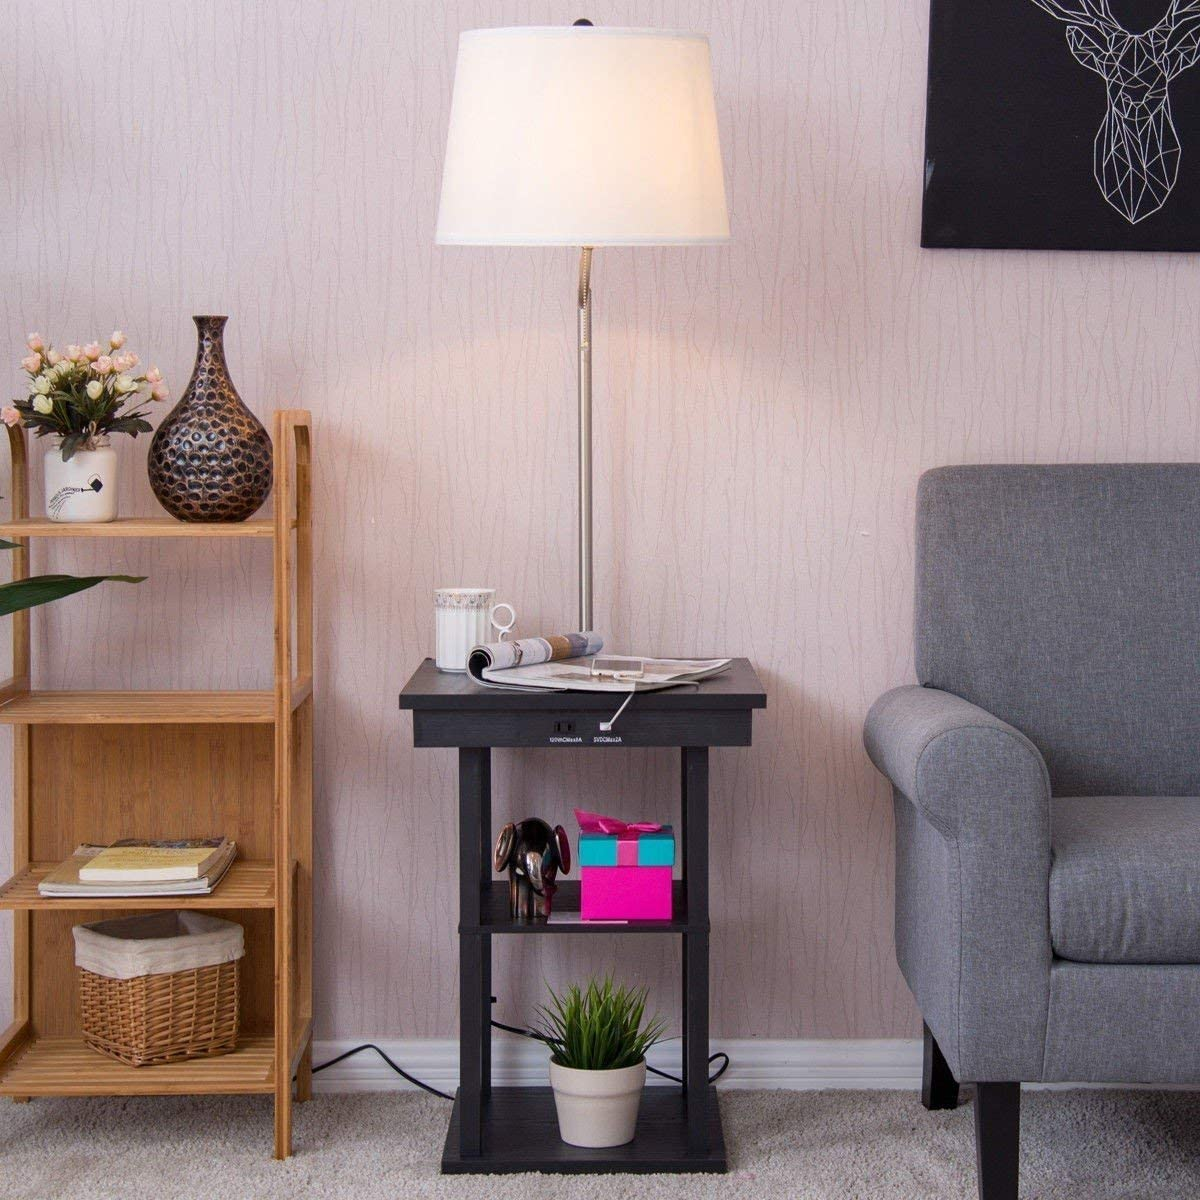 Built in End Table Swing Arm Floor Lamp with Shade 2 USB Ports, Bedside Table Lamp for Bedroom & Side Table Lamp, Living Room BeUniqueToday